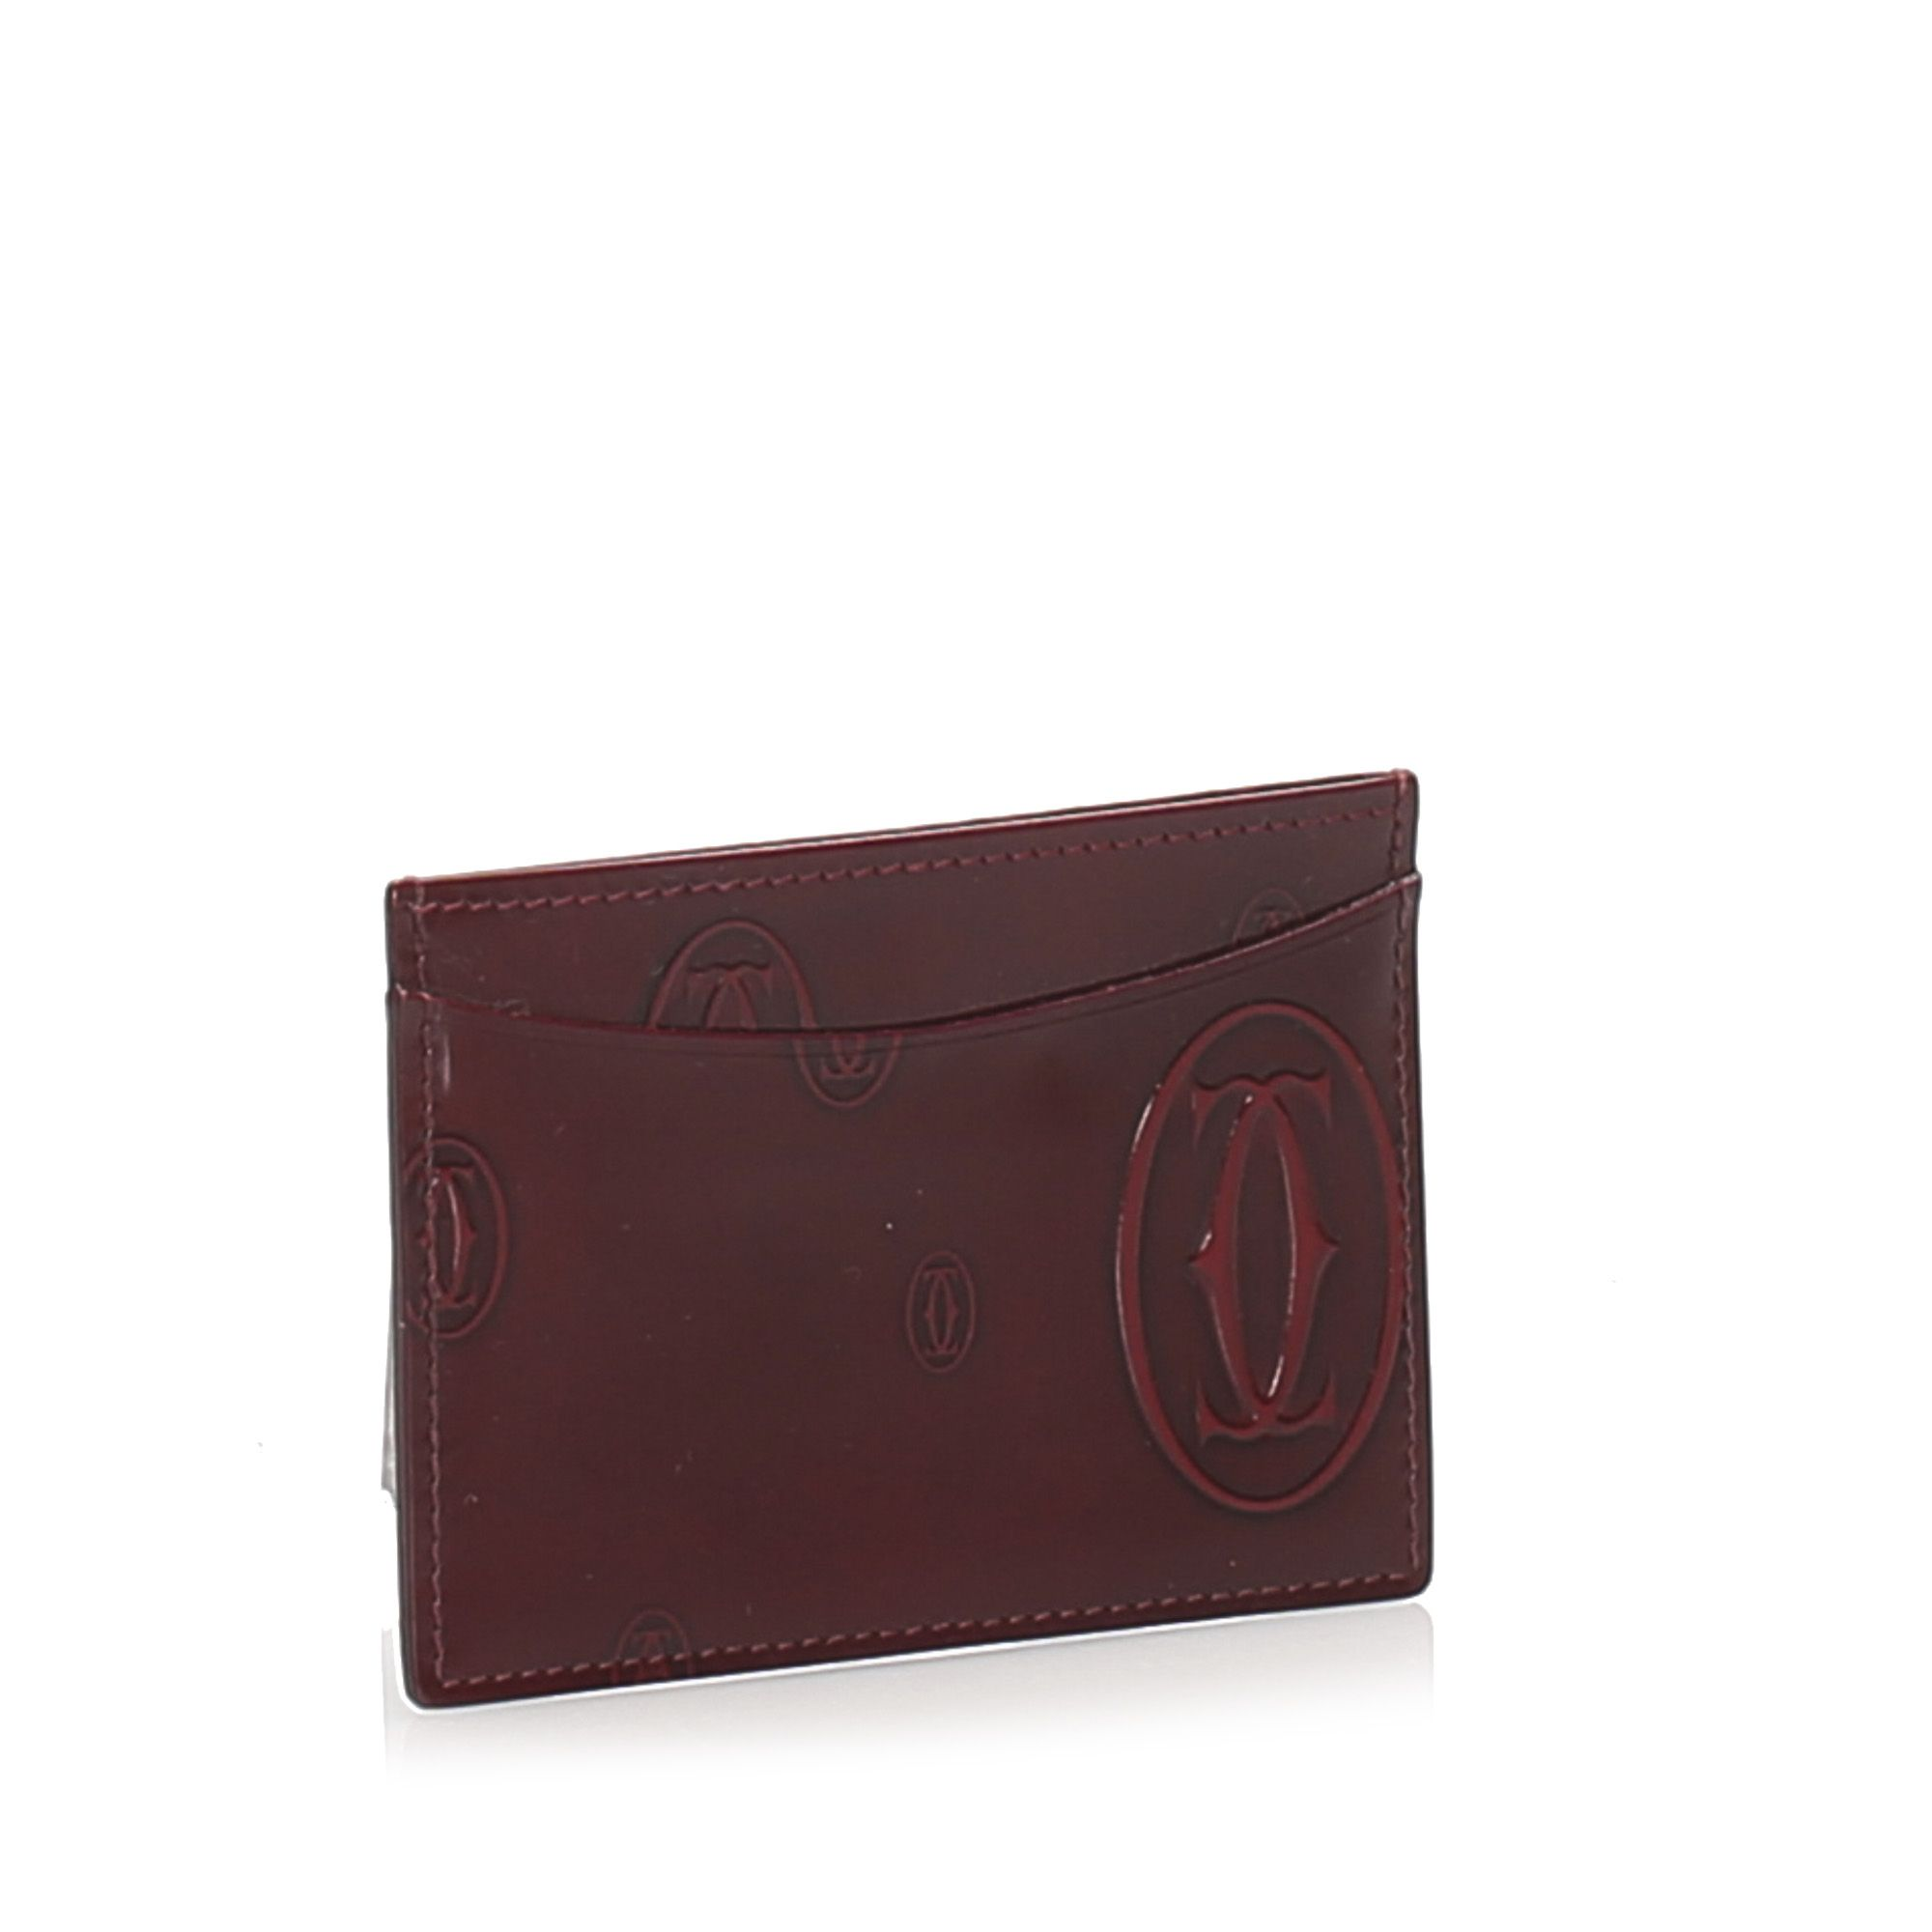 Vintage Cartier Happy Birthday Patent Leather Card Holder Red